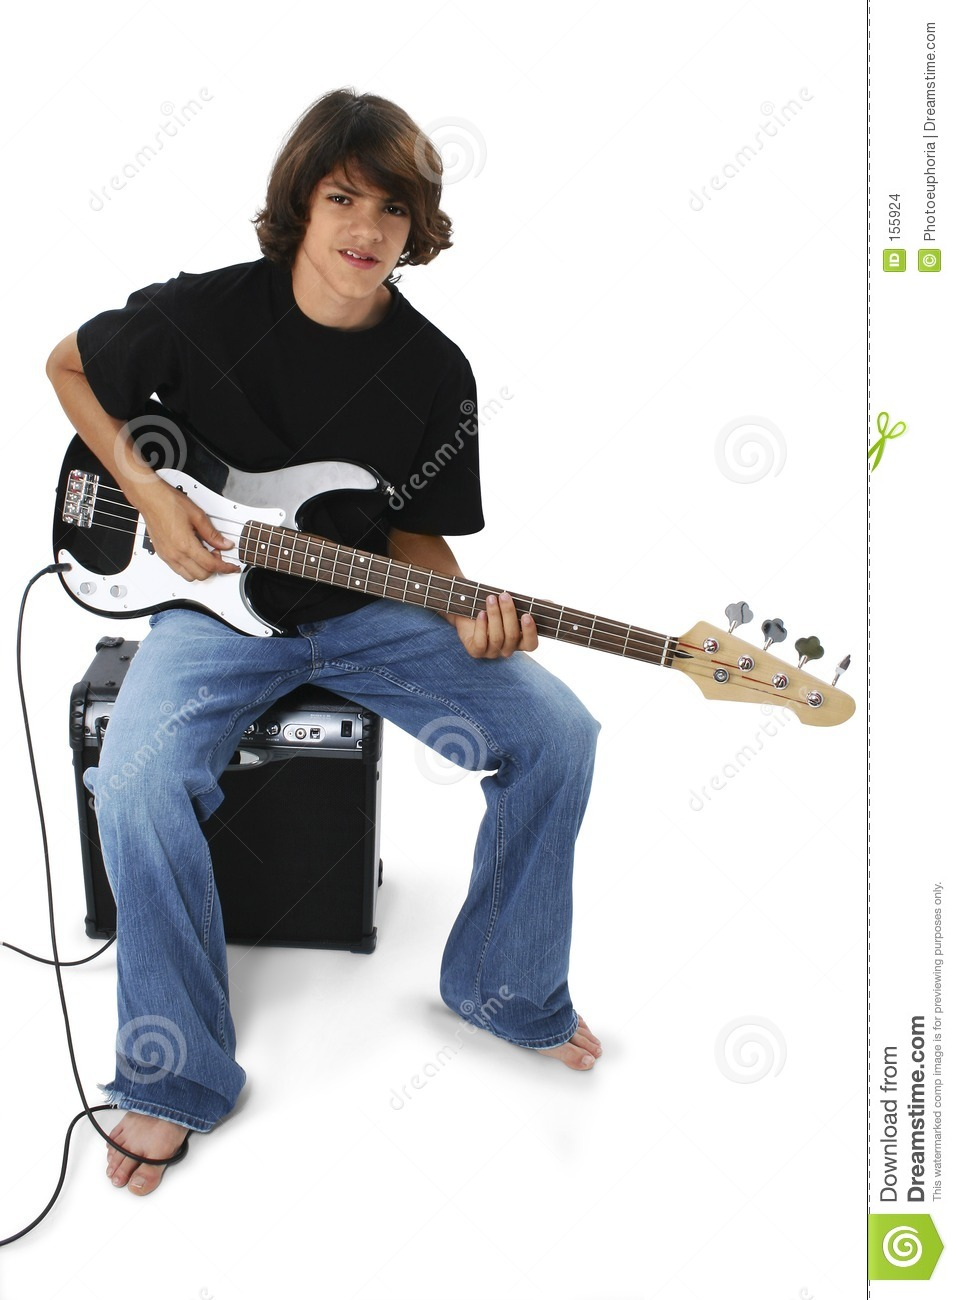 boy with black and white bass guitar sitting on amp stock images image 155924. Black Bedroom Furniture Sets. Home Design Ideas